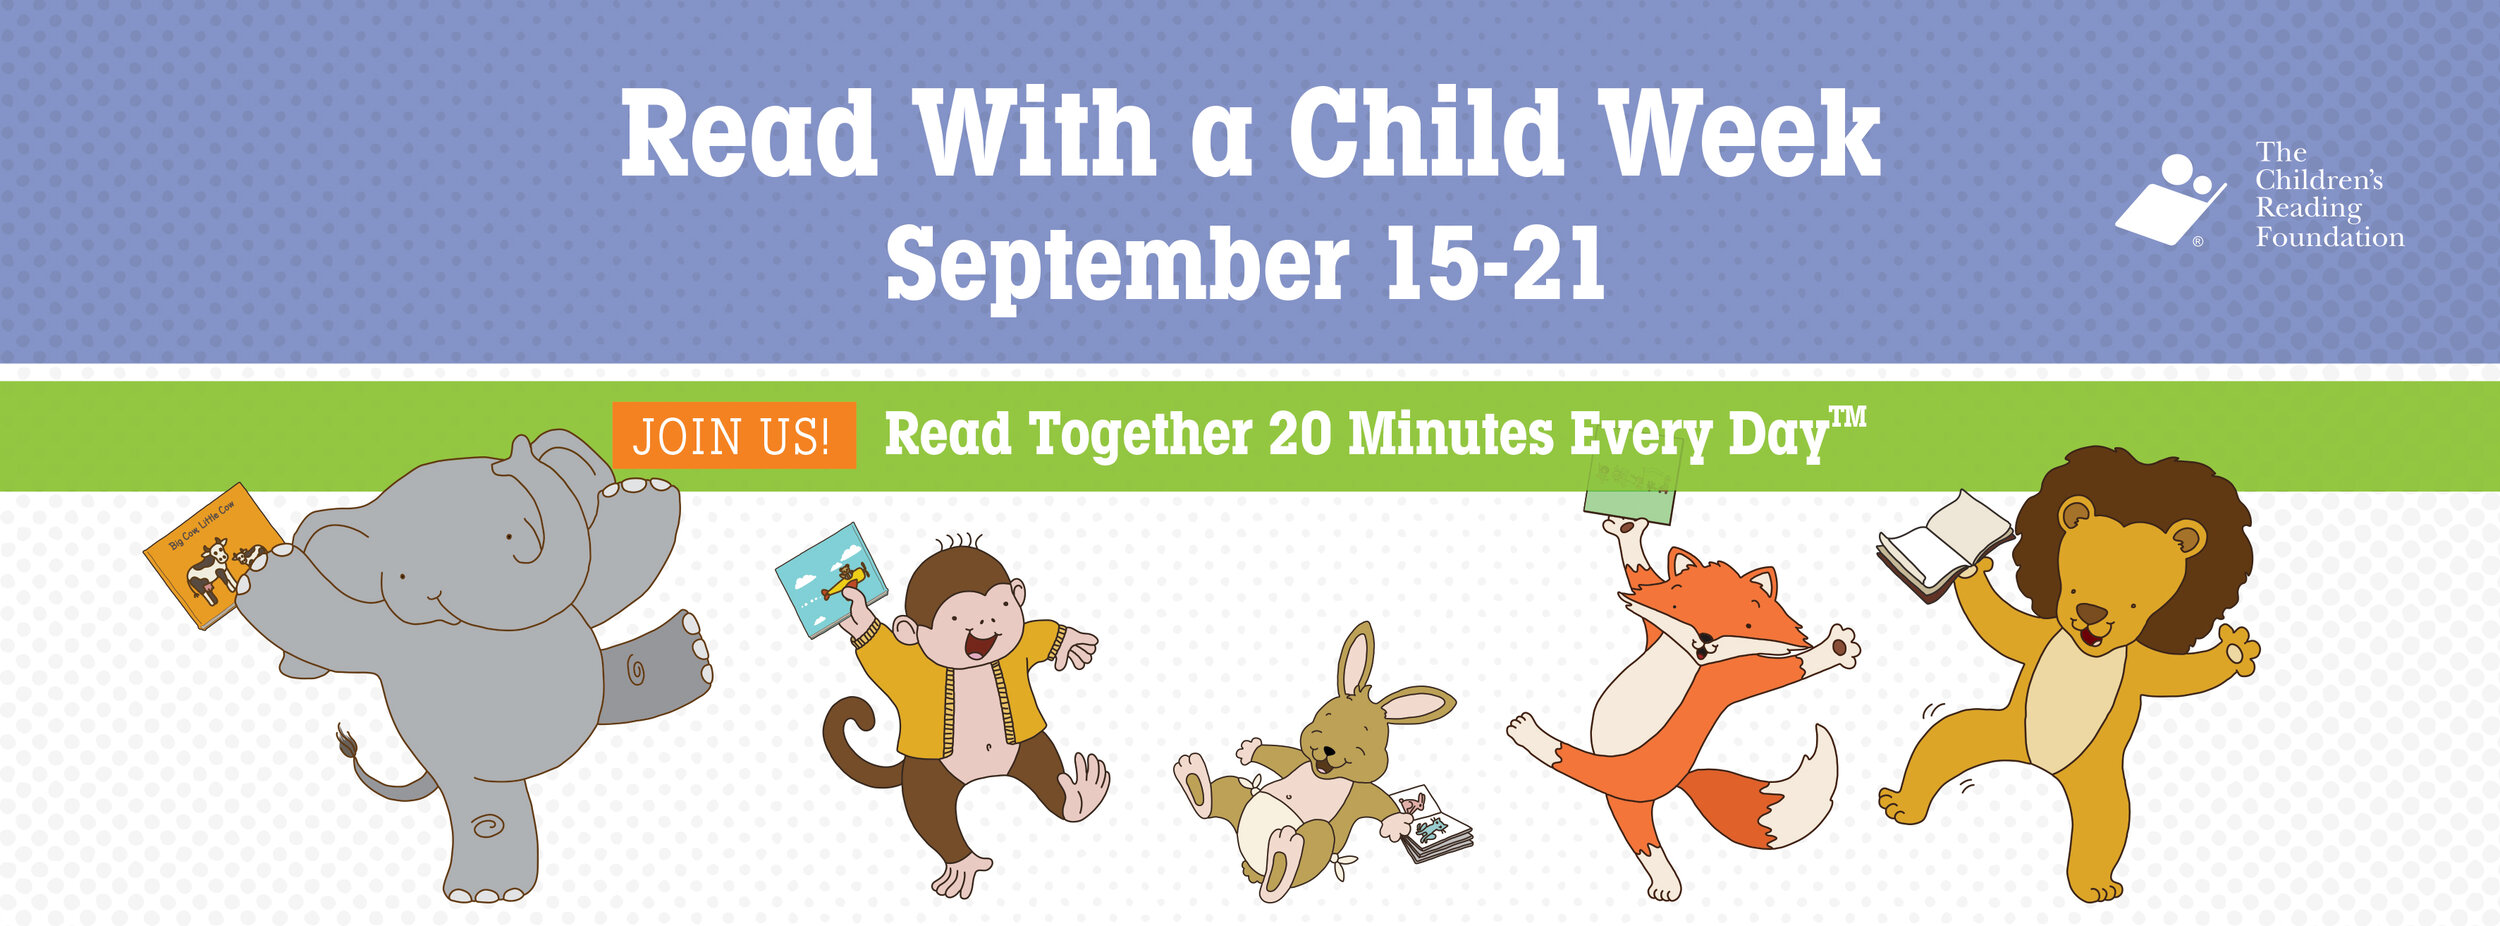 CRF_ReadWithAChildWeek_CoverPhoto-1.jpg